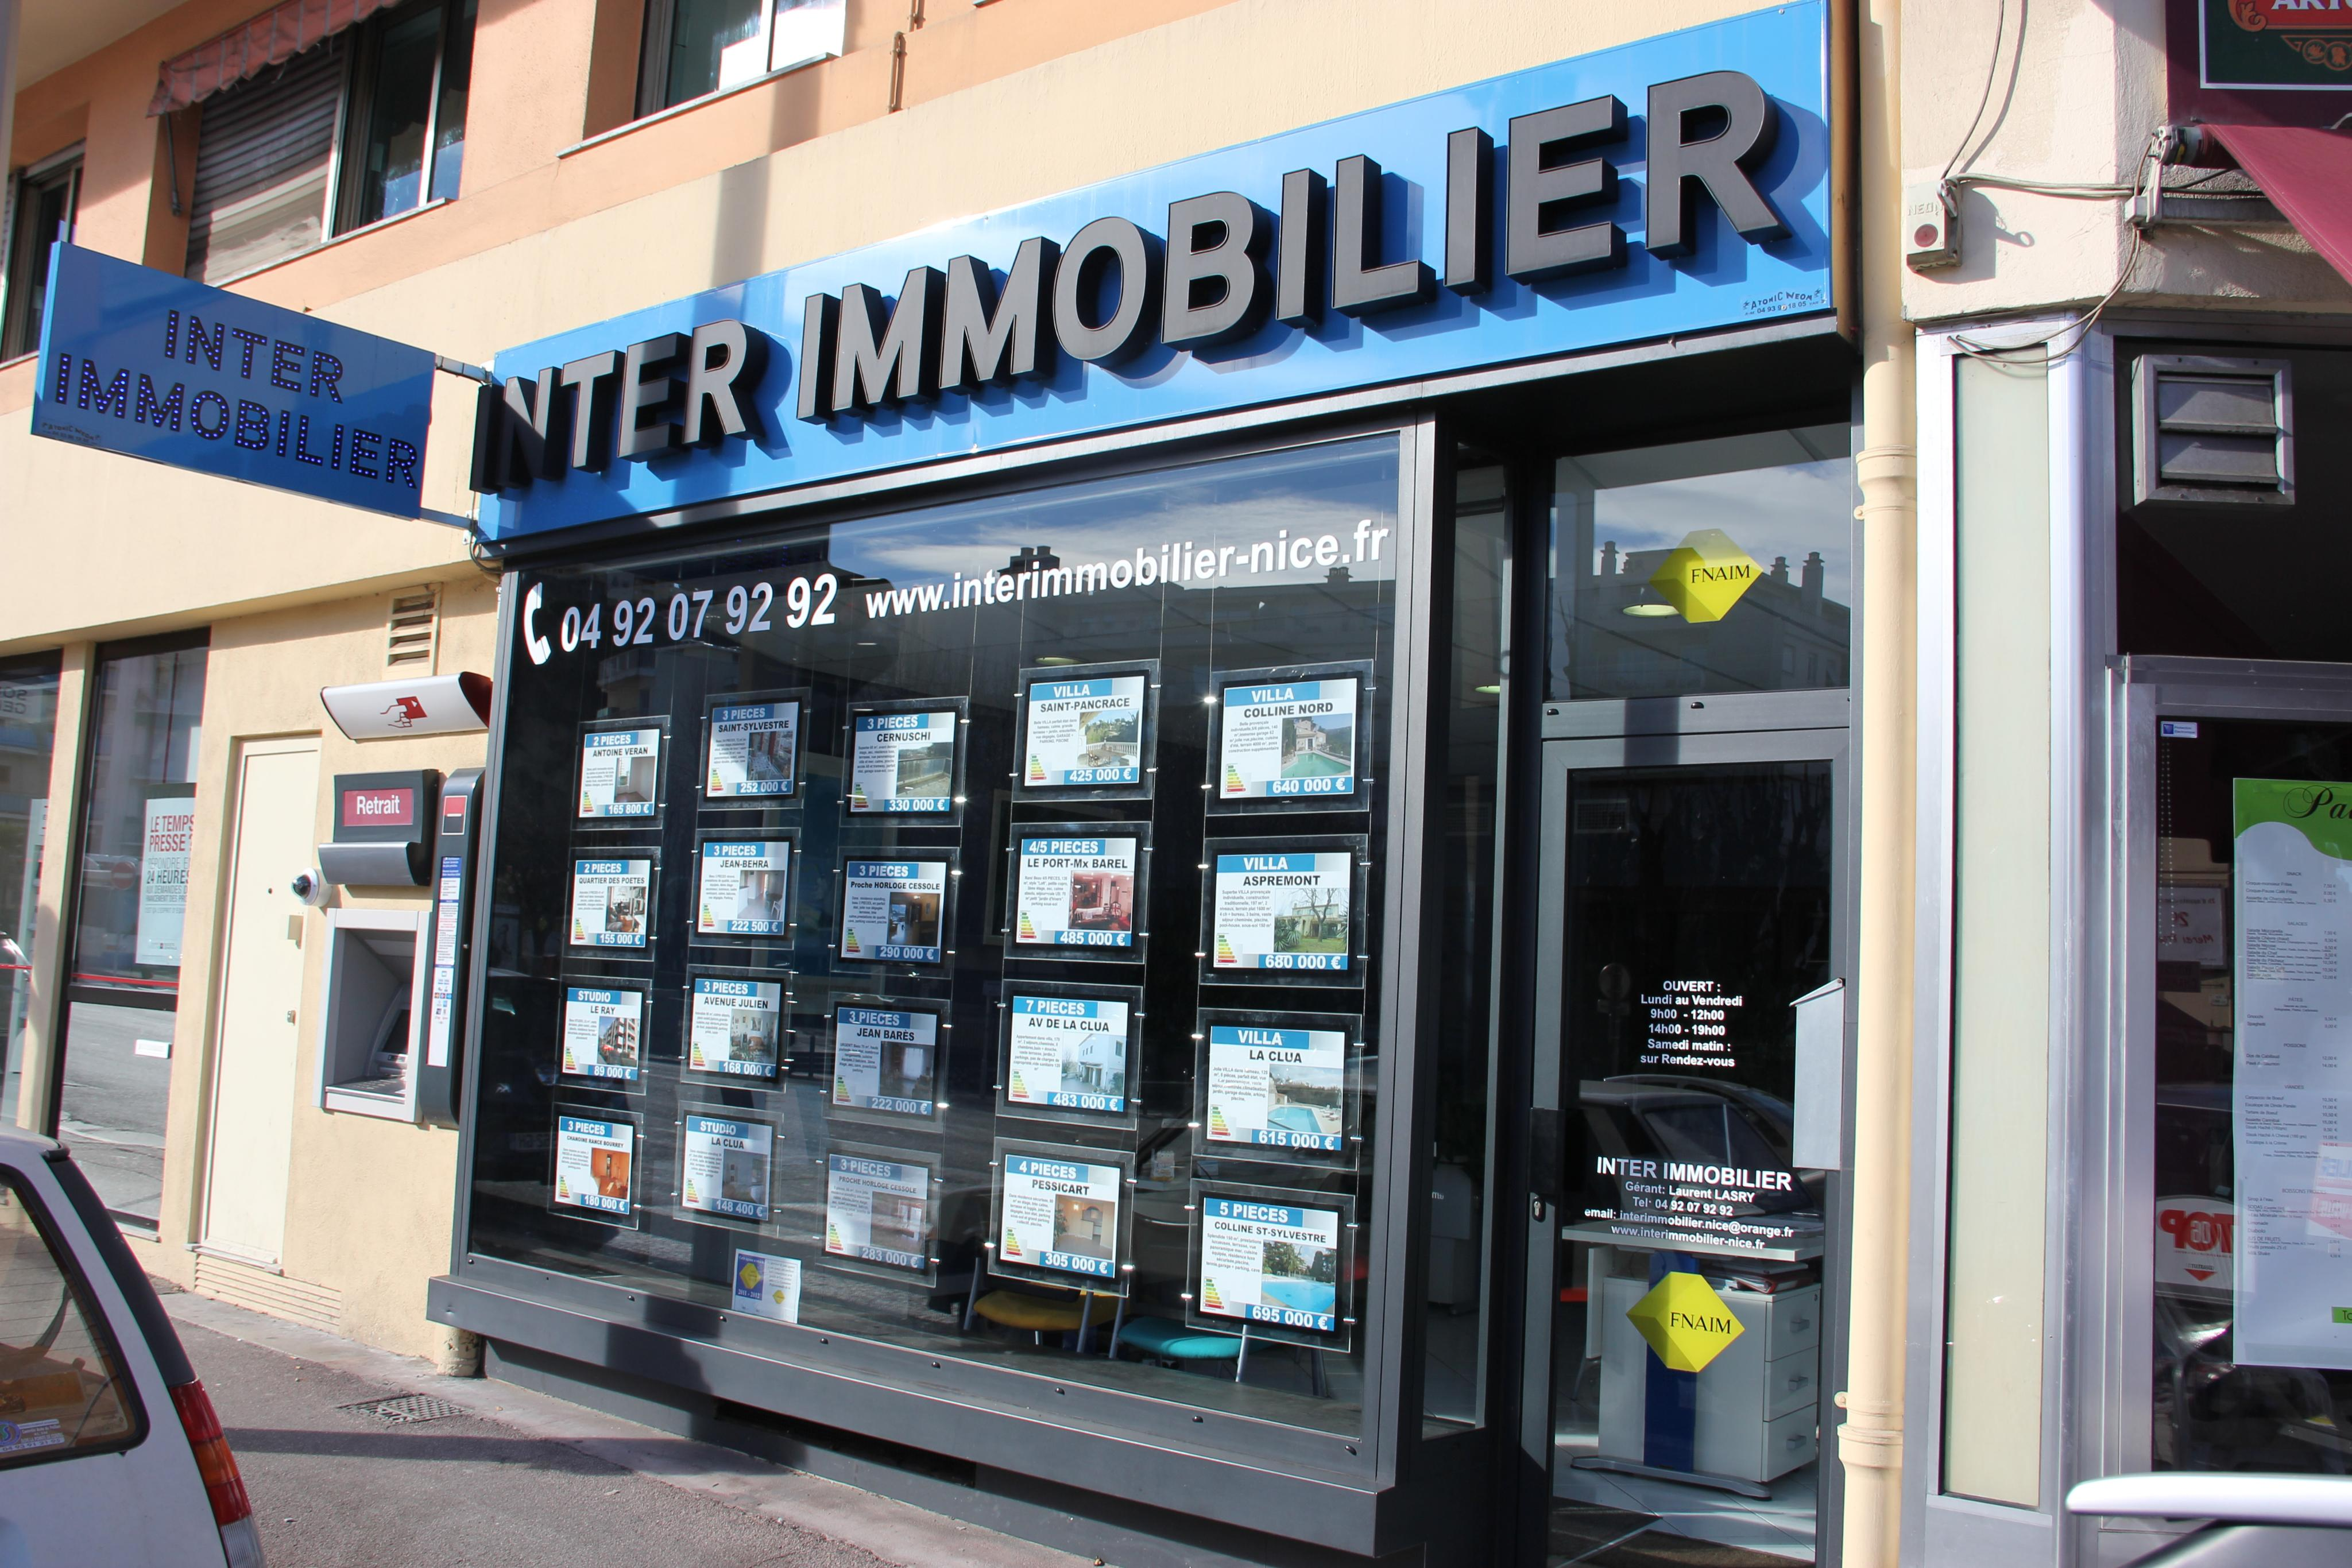 Inter Immobilier agence immobilière Nice (06100)